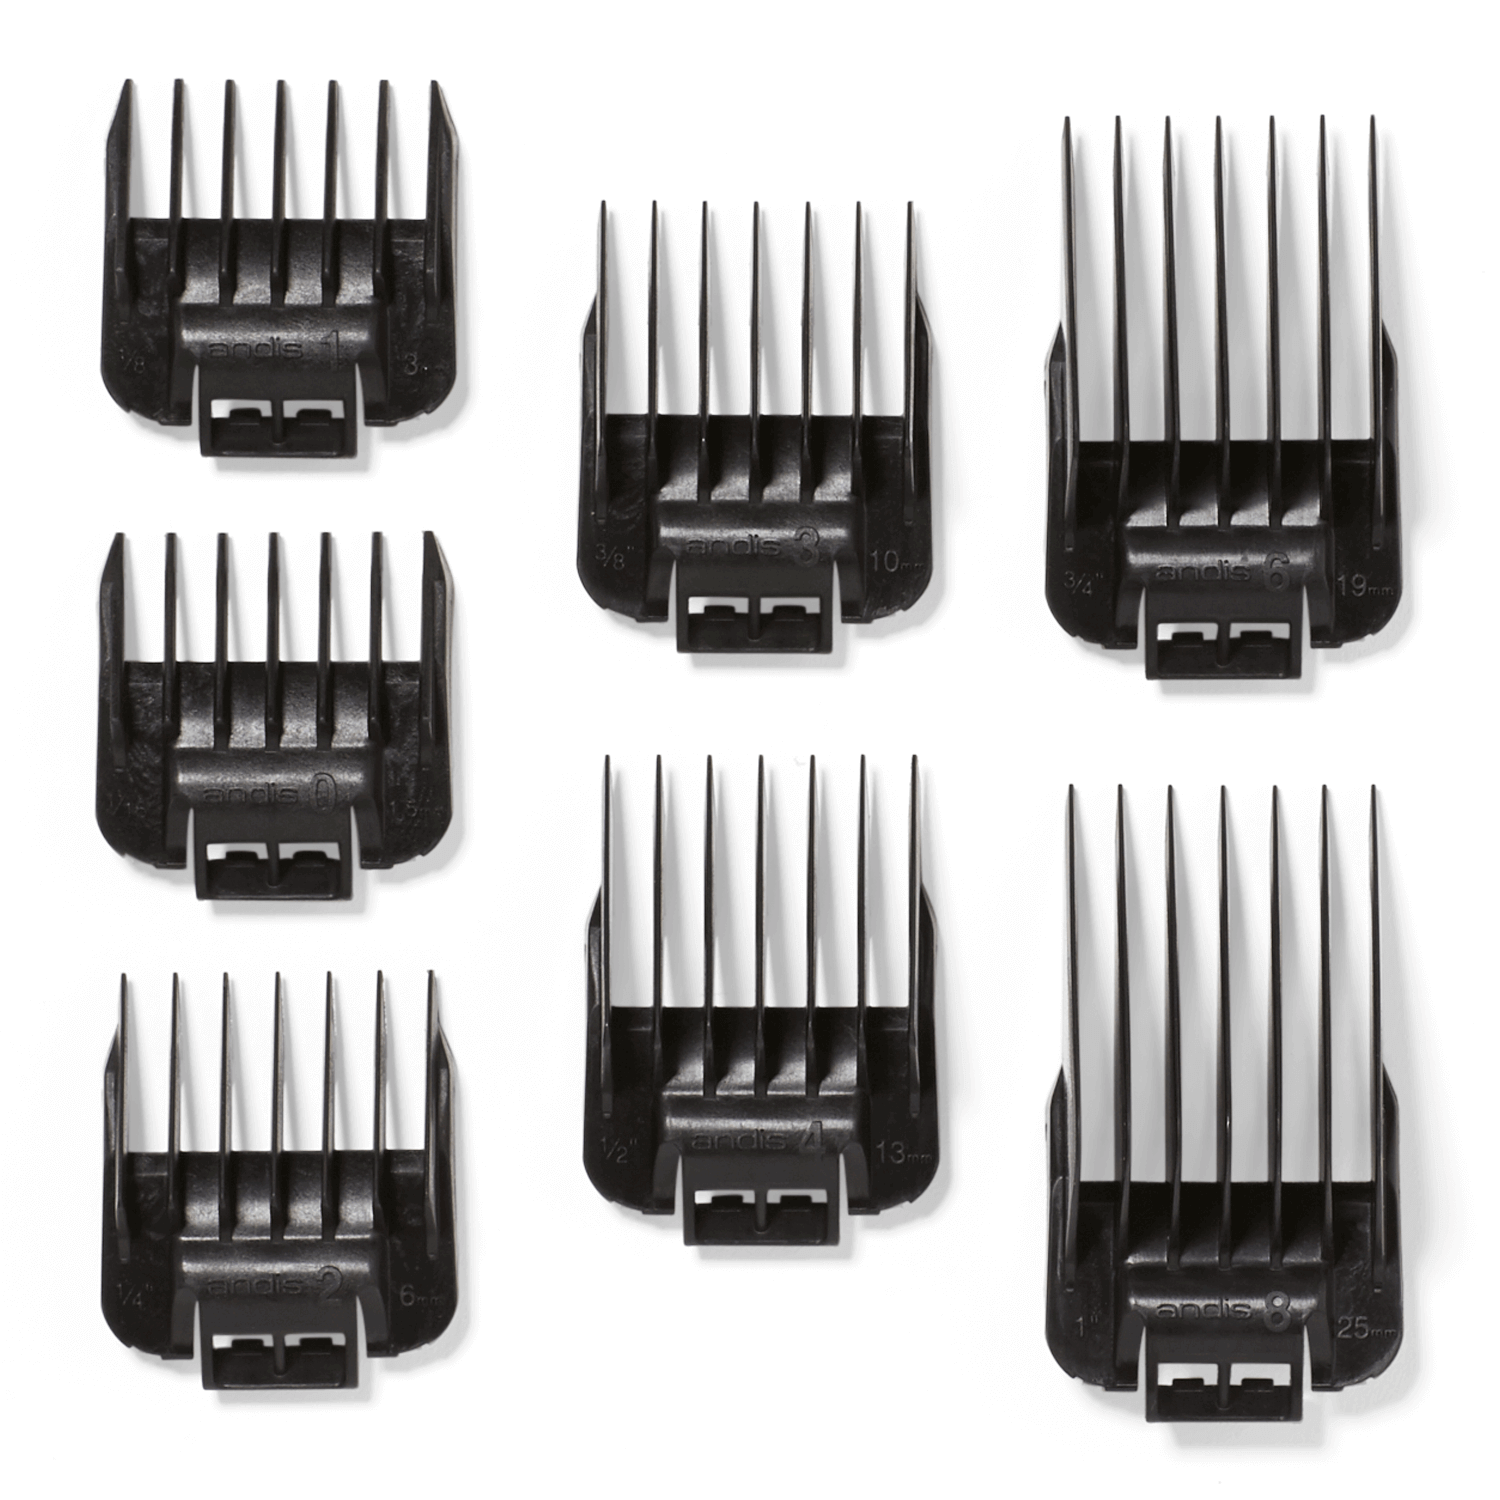 Sally Beauty coupon: Detachable Clipper Combs Set